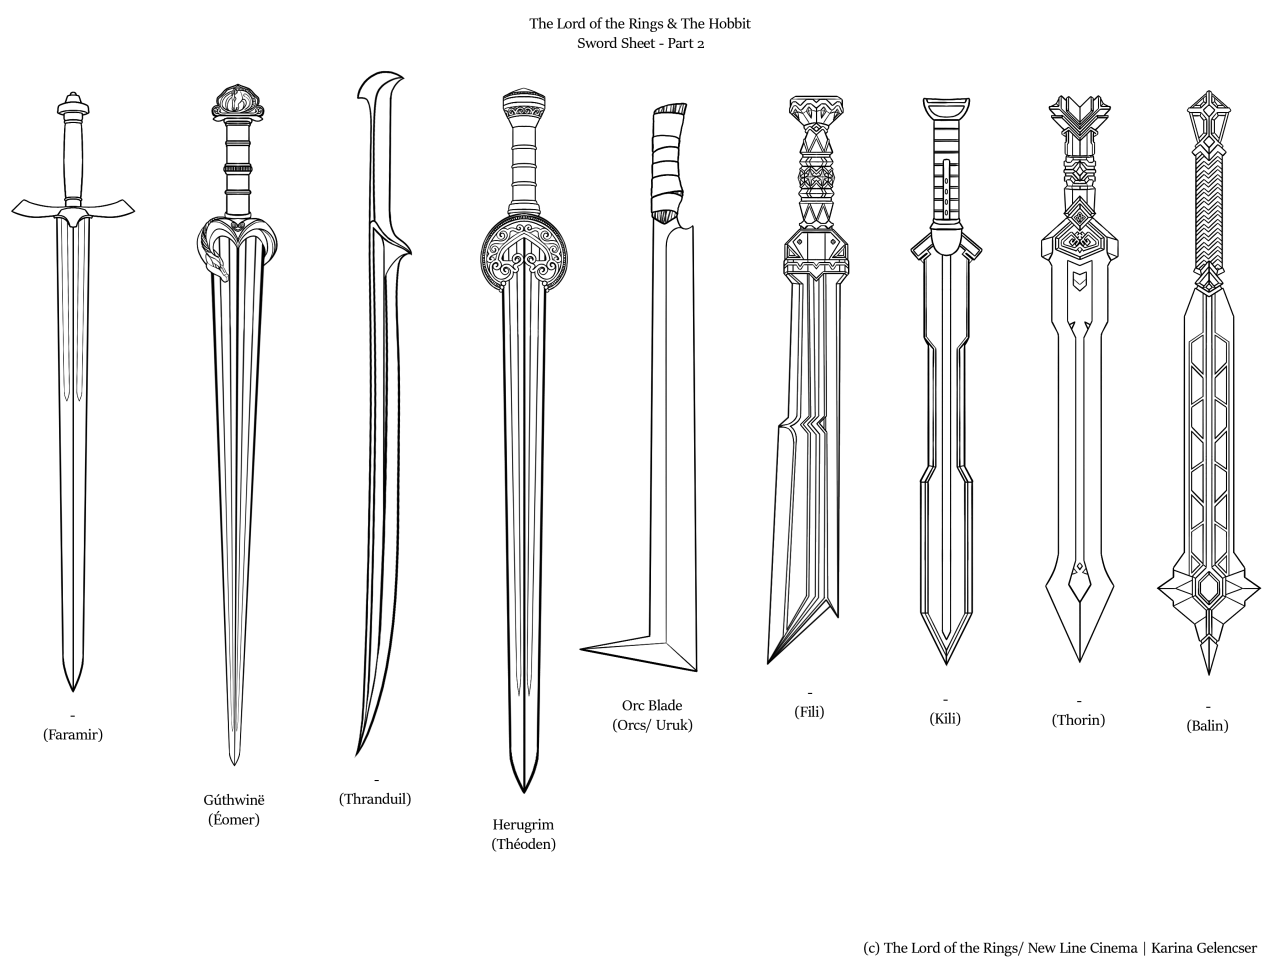 The Lord Of The Rings Amp The Hobbit Sword Sheet